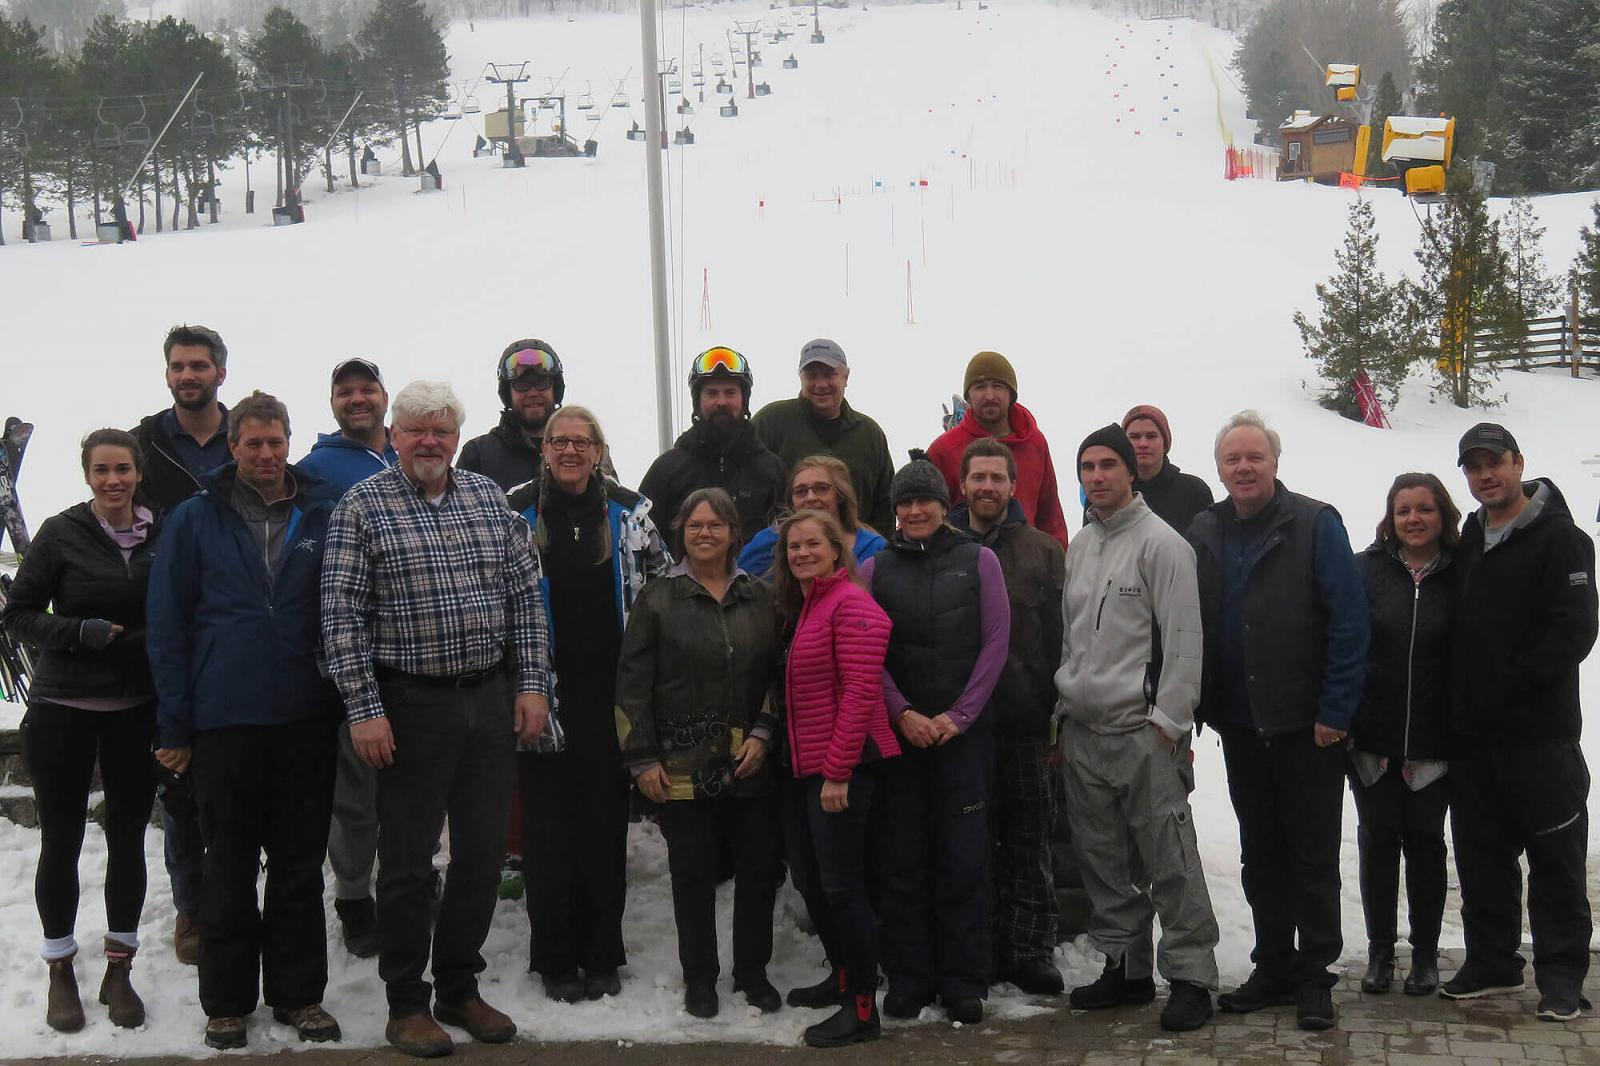 Ski and Spa Day participants enjoyed great conditions on Feb. 7.